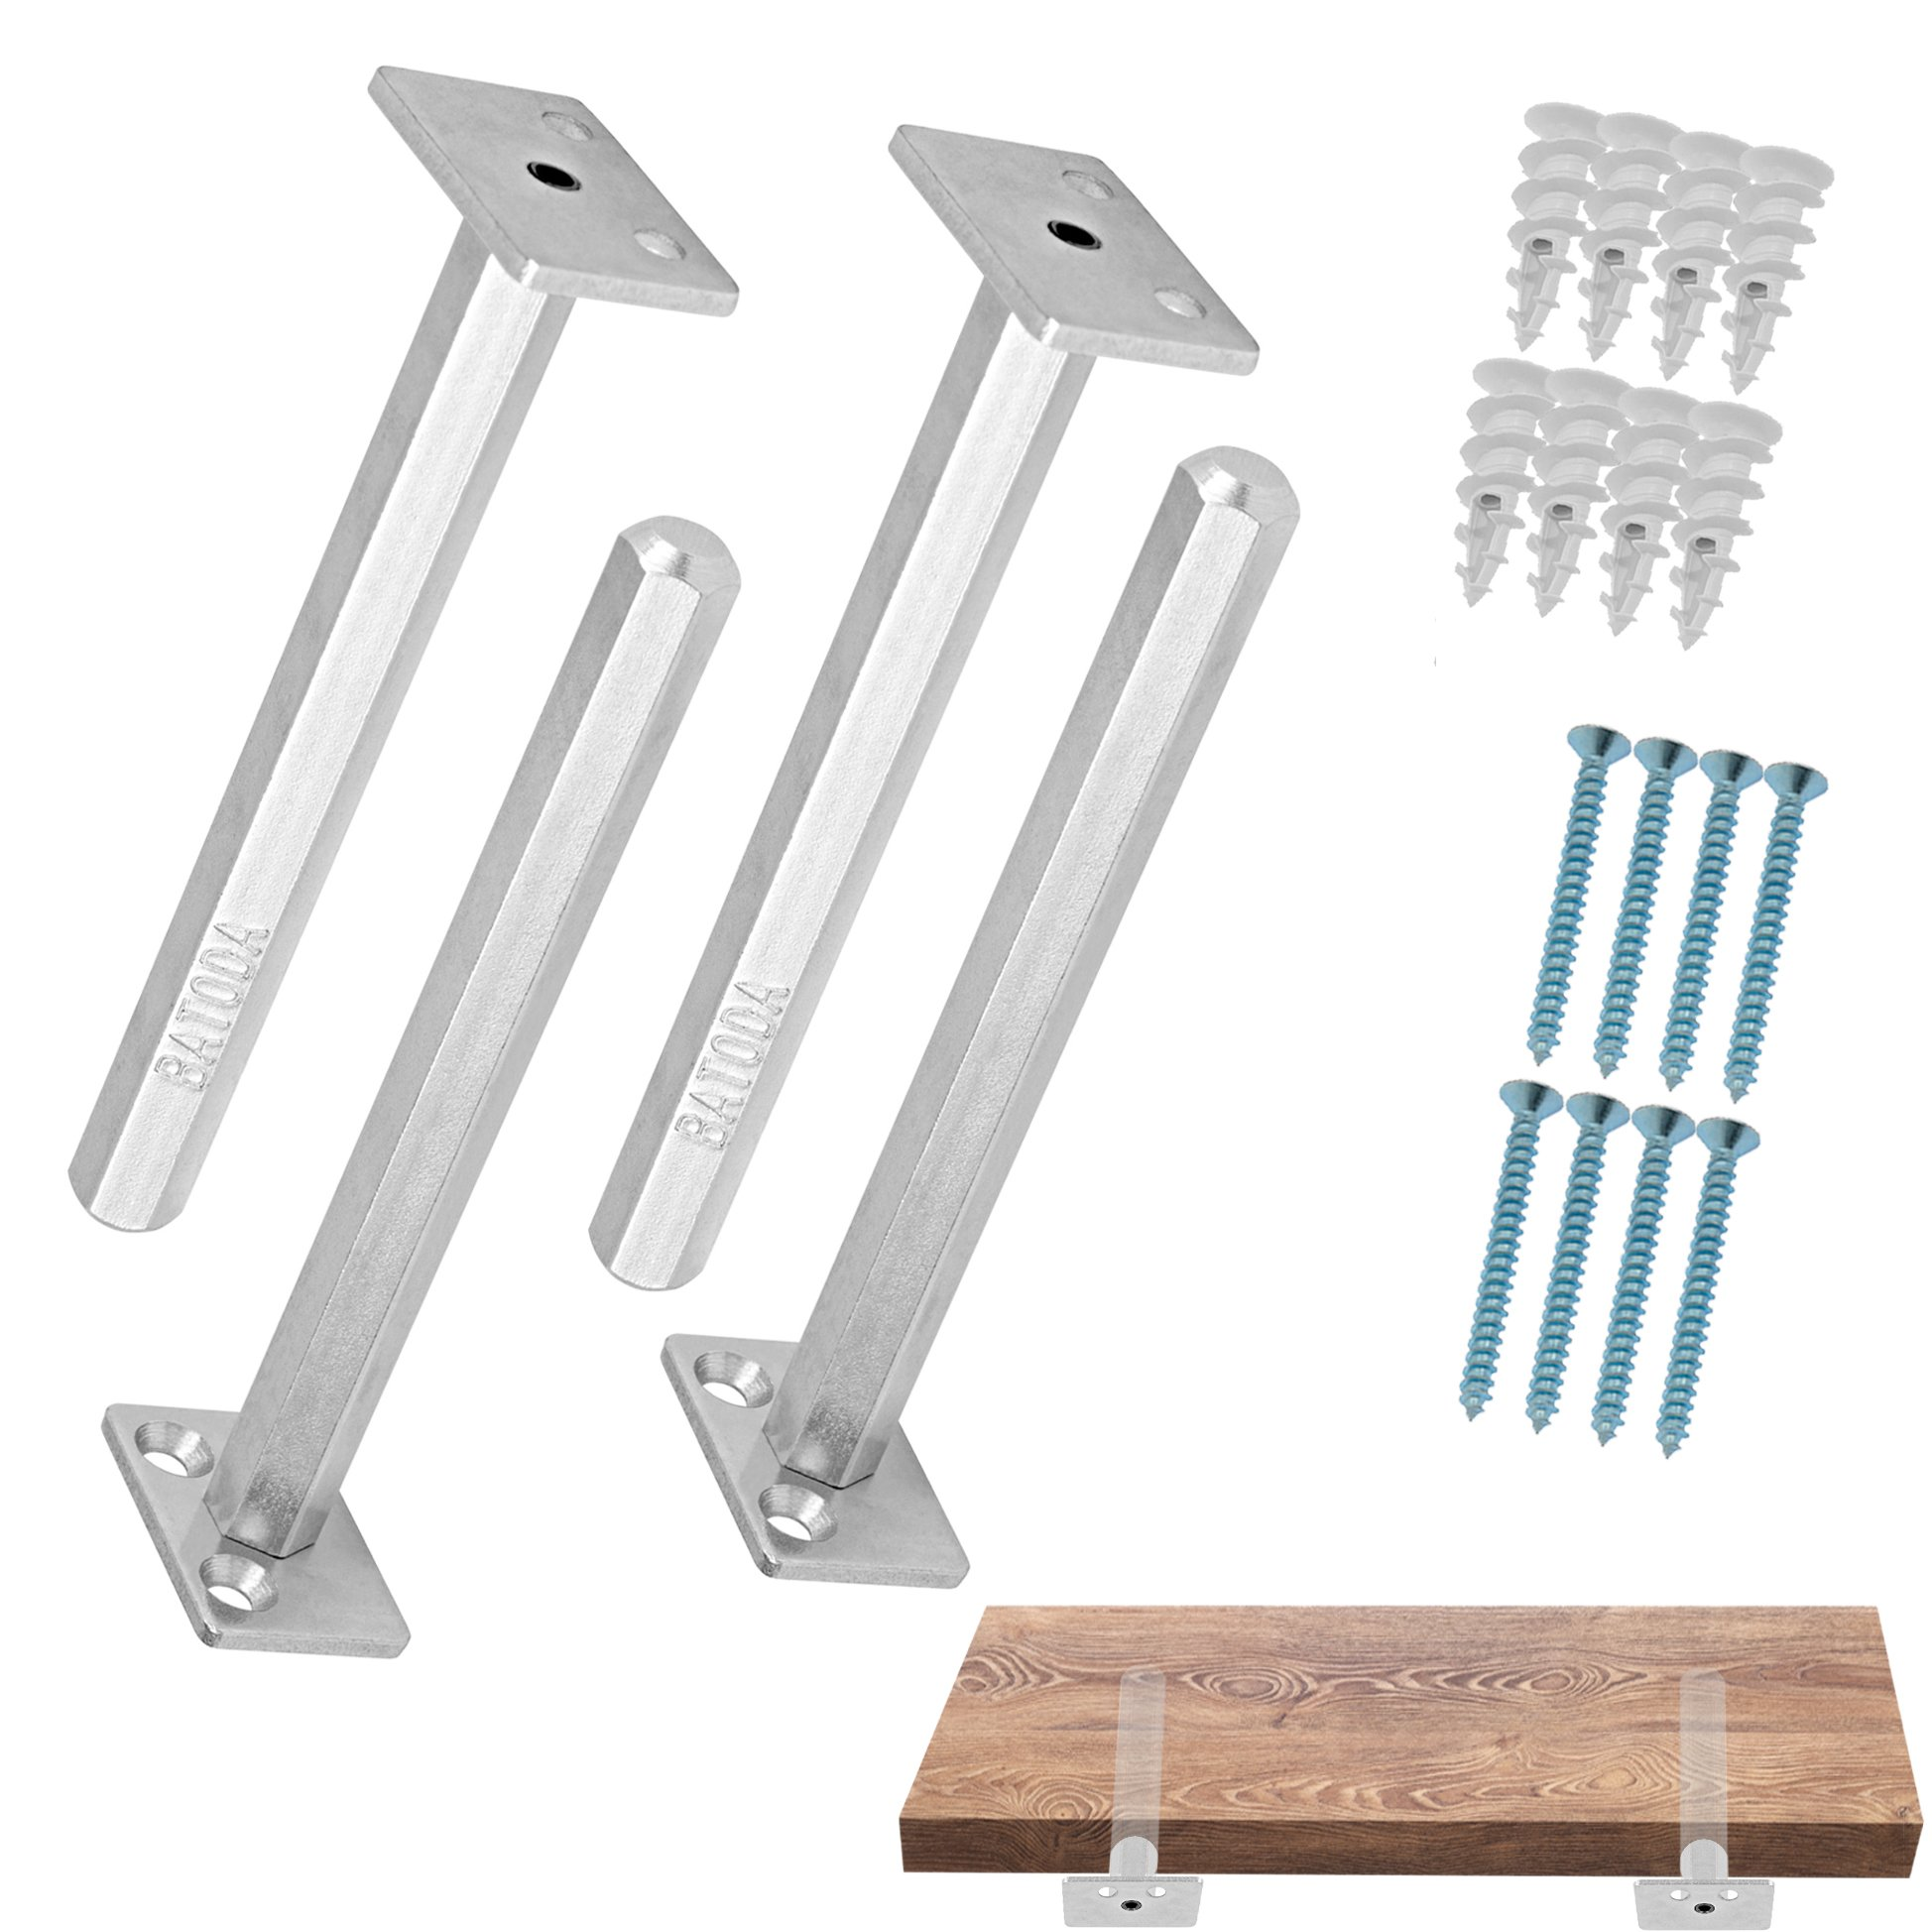 floating shelf bracket pcs galvanized steel blind support concealed fixings supports hidden brackets for wood shelves screws electronics corner ikea hack lack sealing concrete